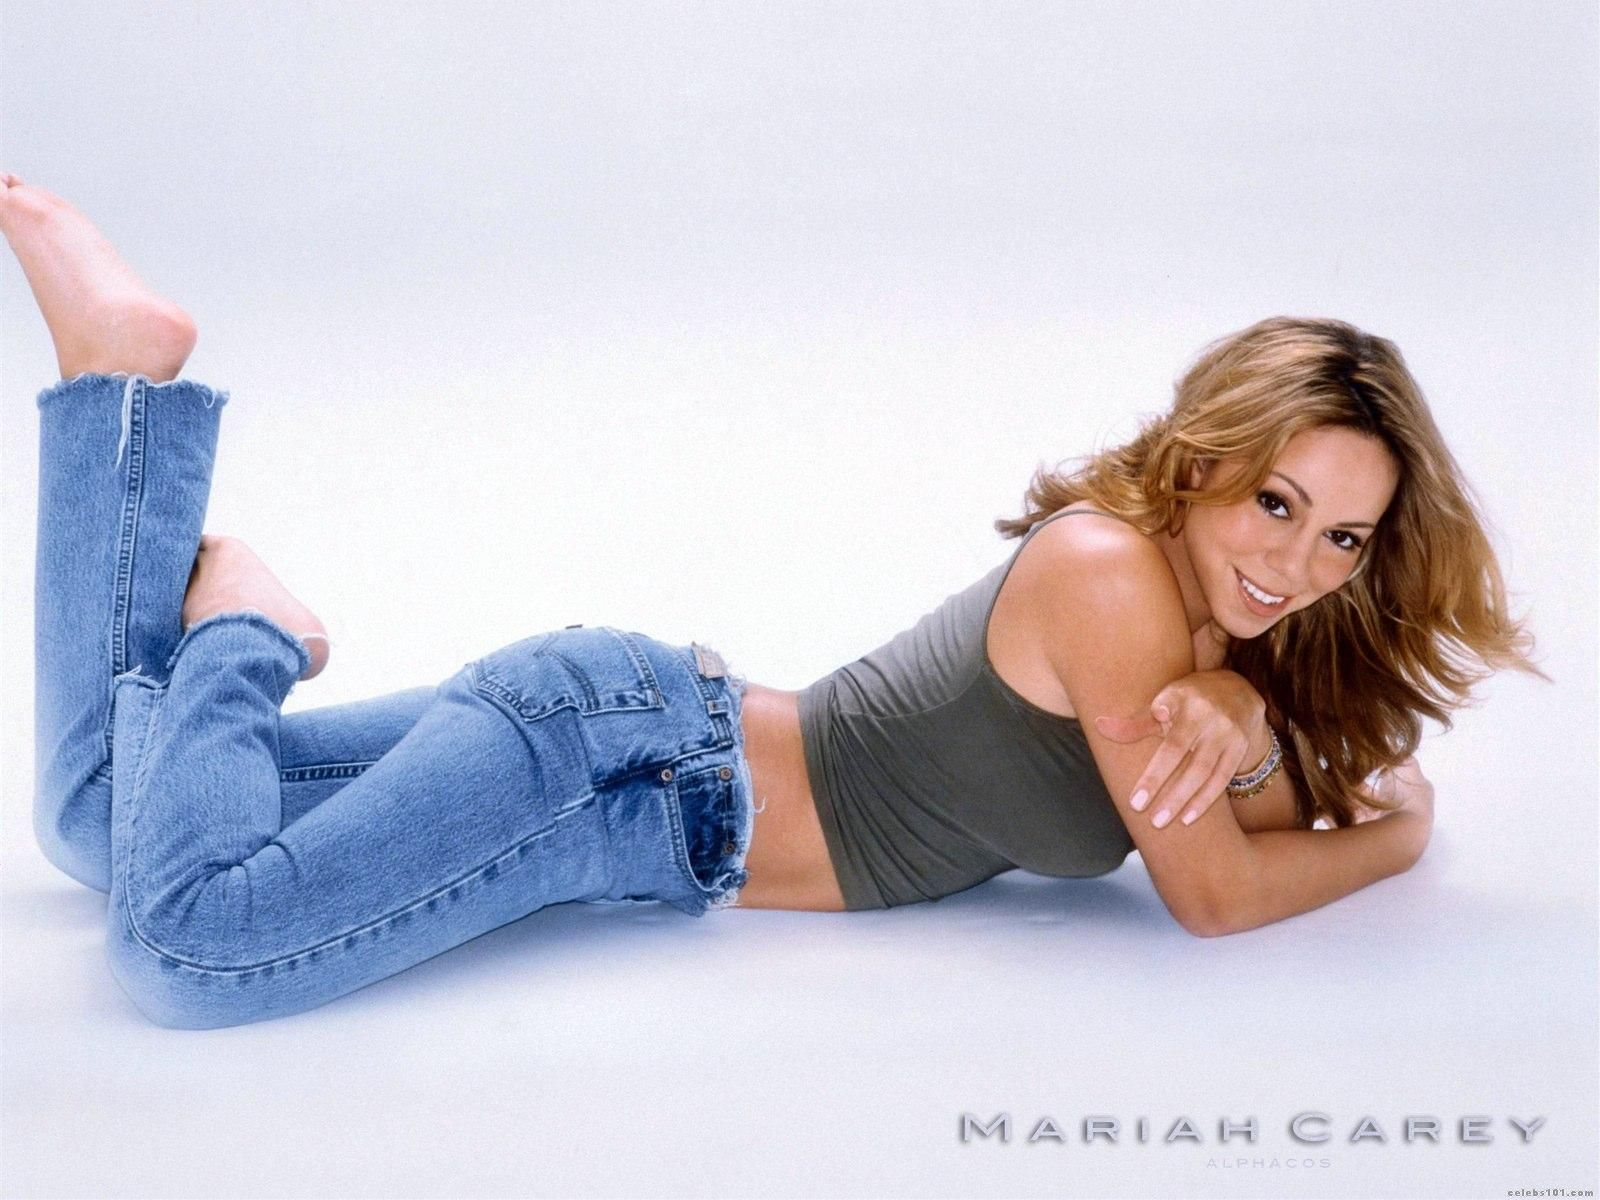 Http Www Celebs101 Com Wallpapers Mariah Carey 158568 Mariah Carey 19 Jpg Mariah Carey Mariah Carey Pictures Mariah